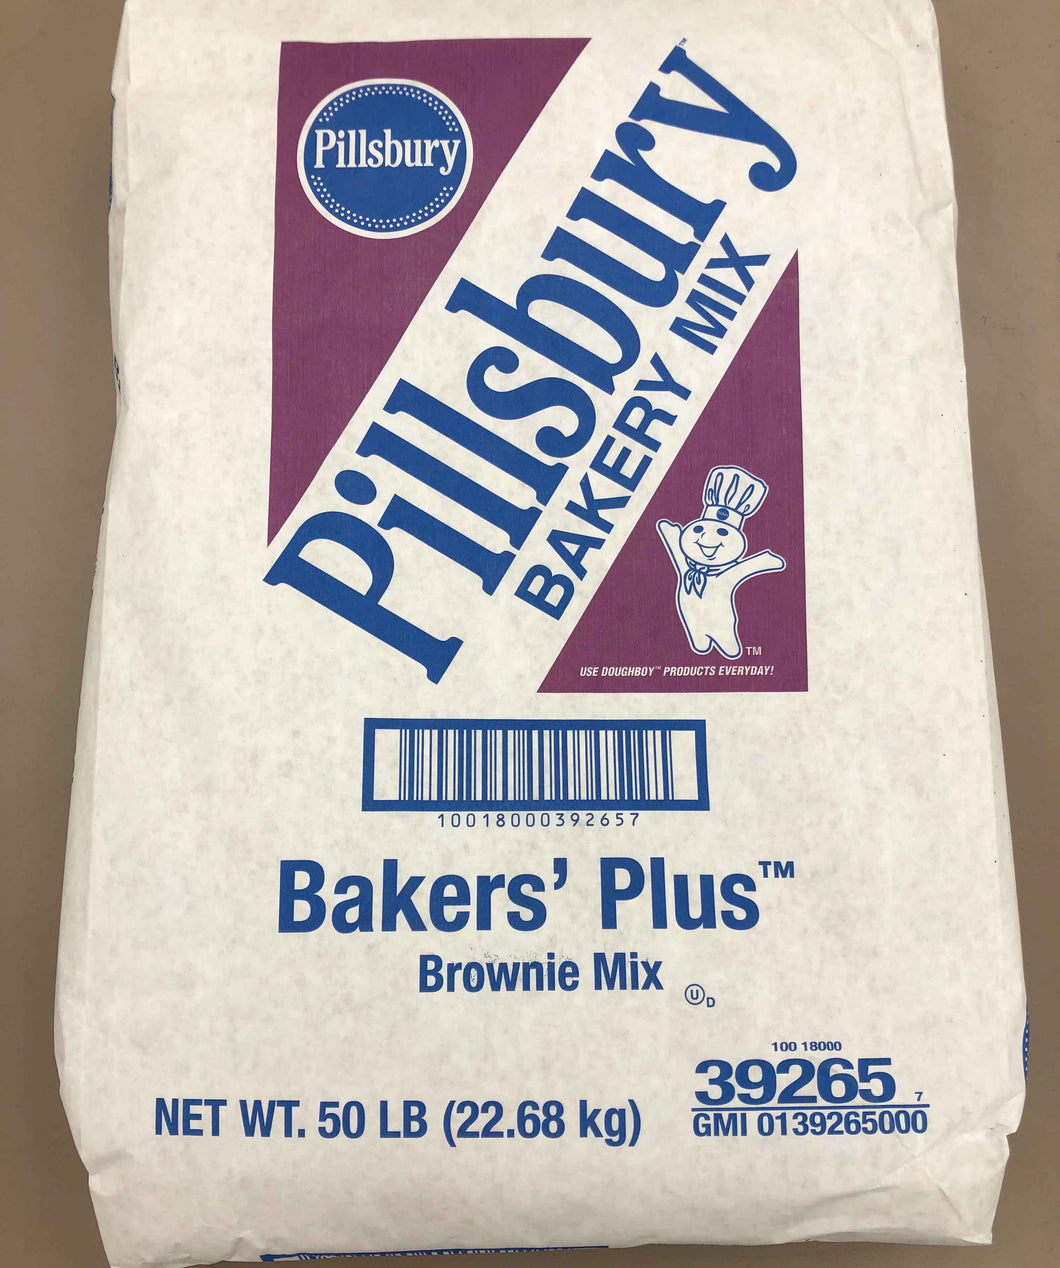 Bakers' Plus Brownie Mix